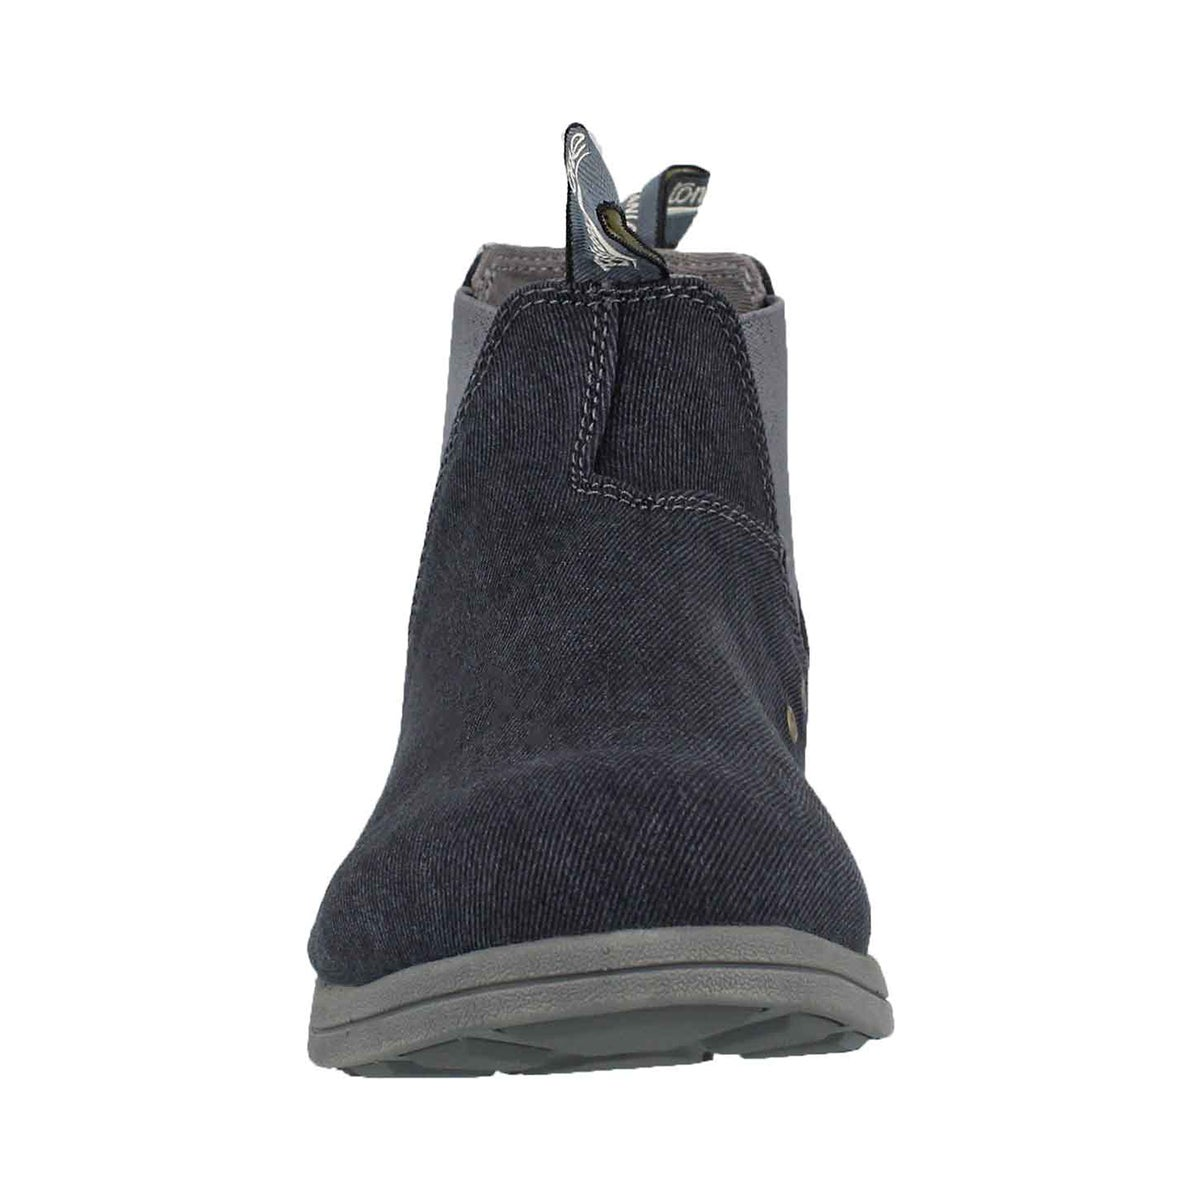 Unisex Canvas denim pull on boot